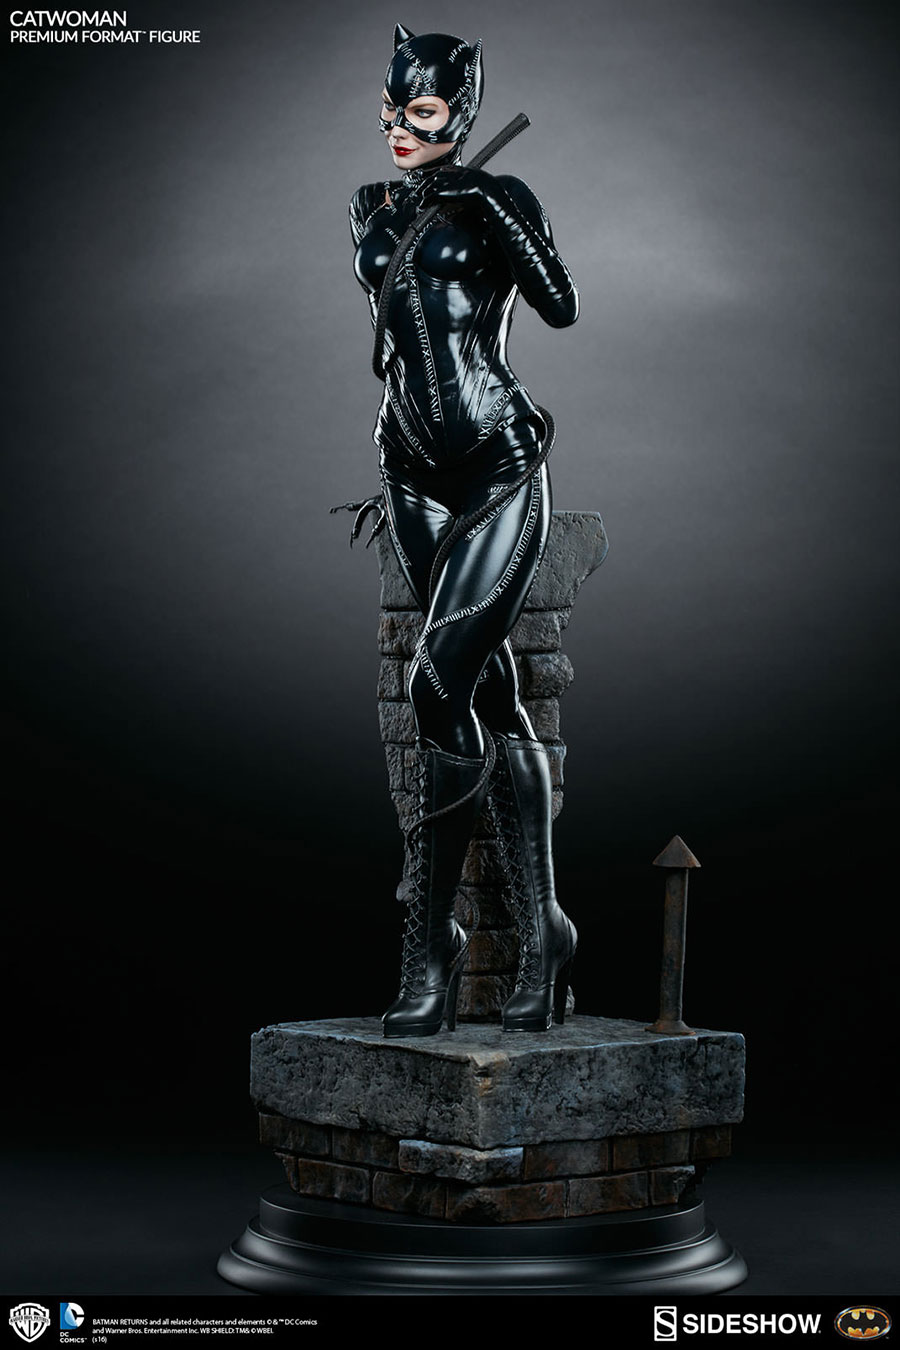 Sideshow-Catwoman-Statue-8